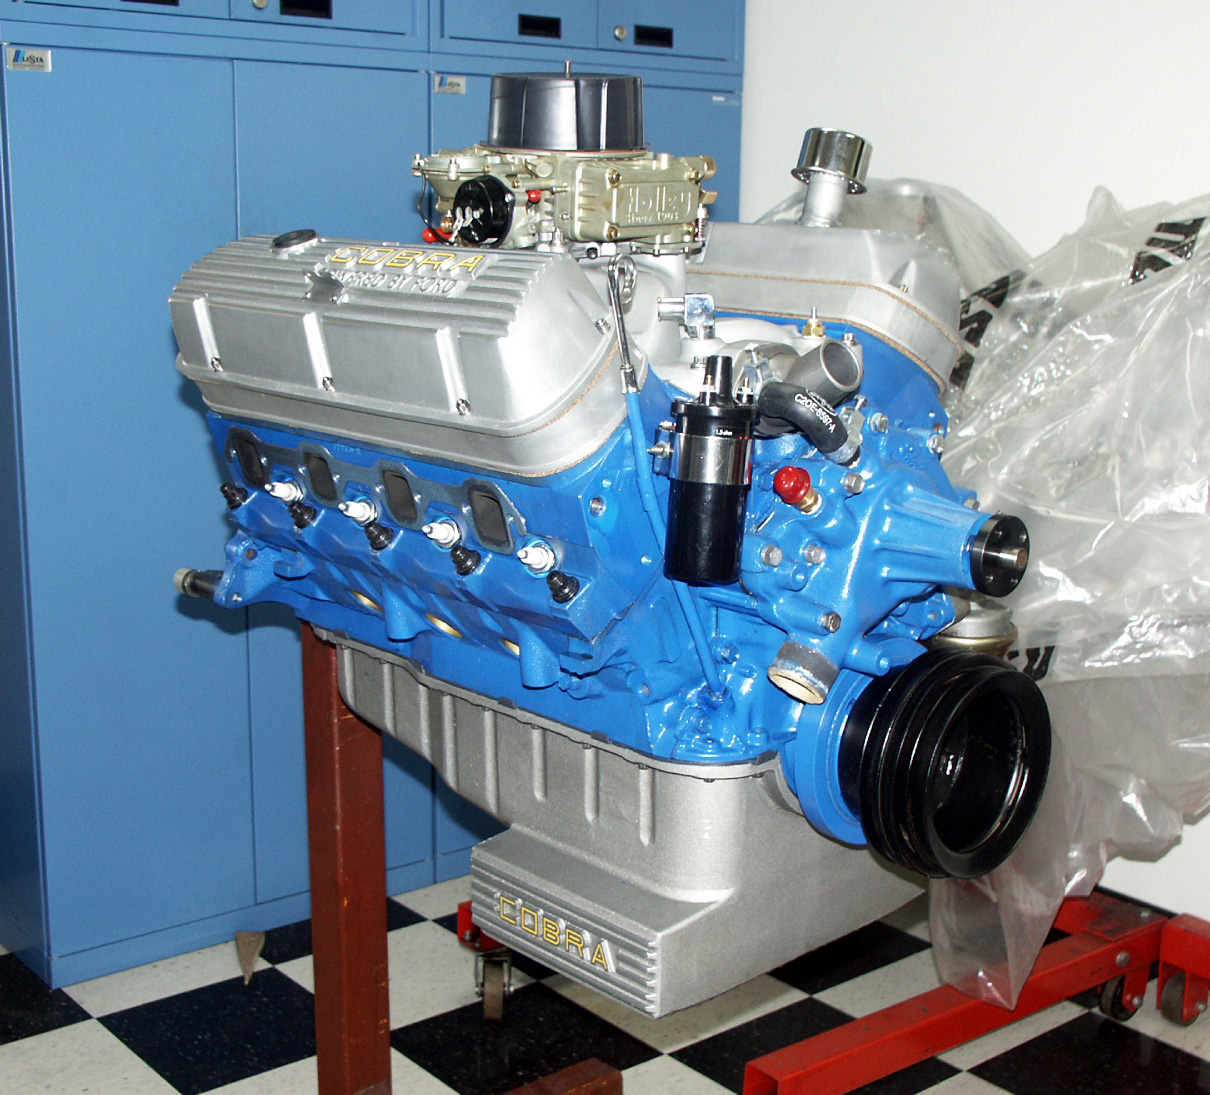 completed engine 1.JPG